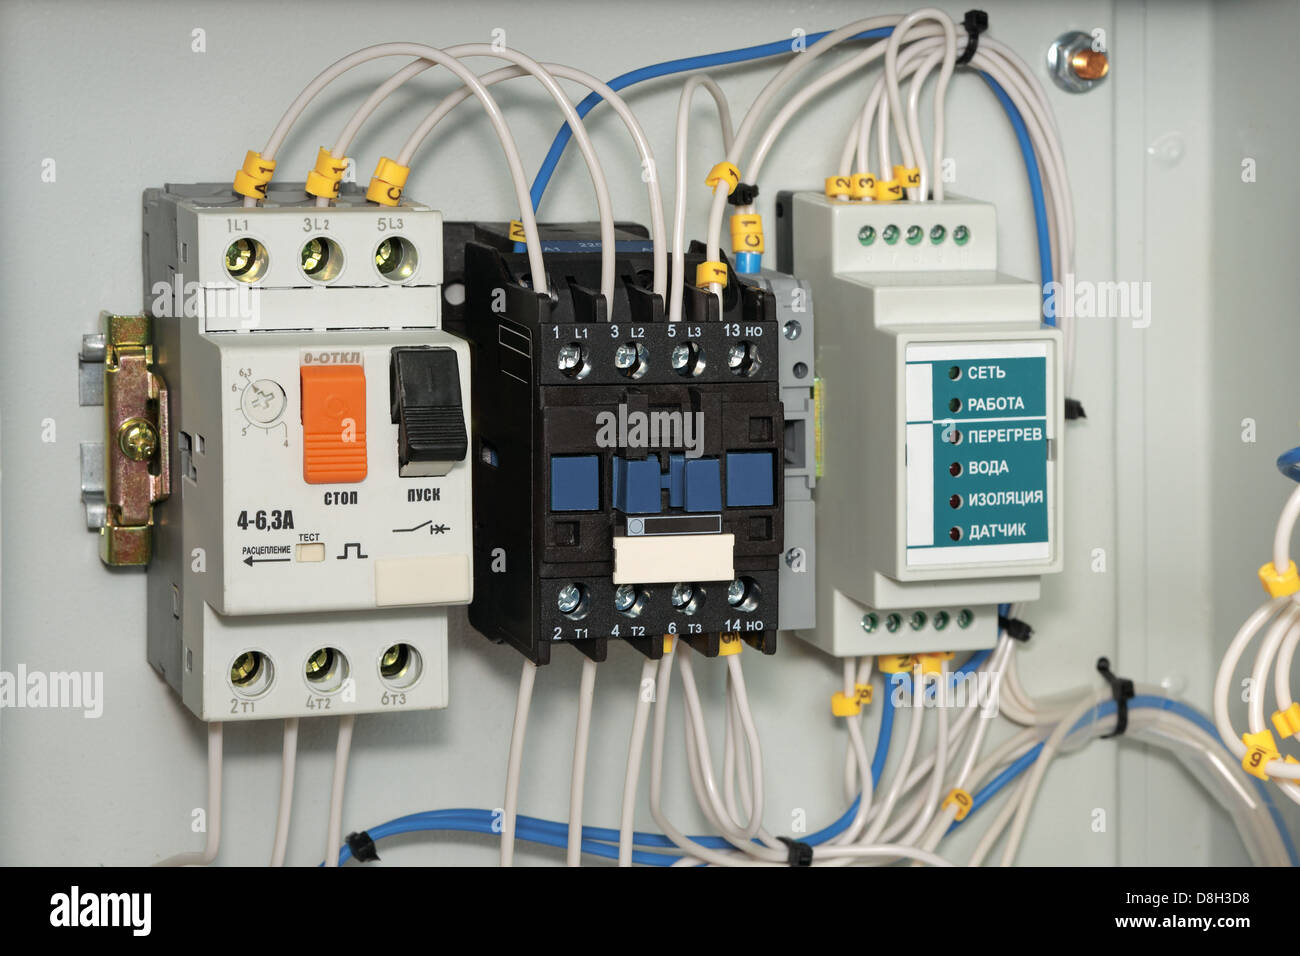 Fuse Box At Home Depot Auto Electrical Wiring Diagram